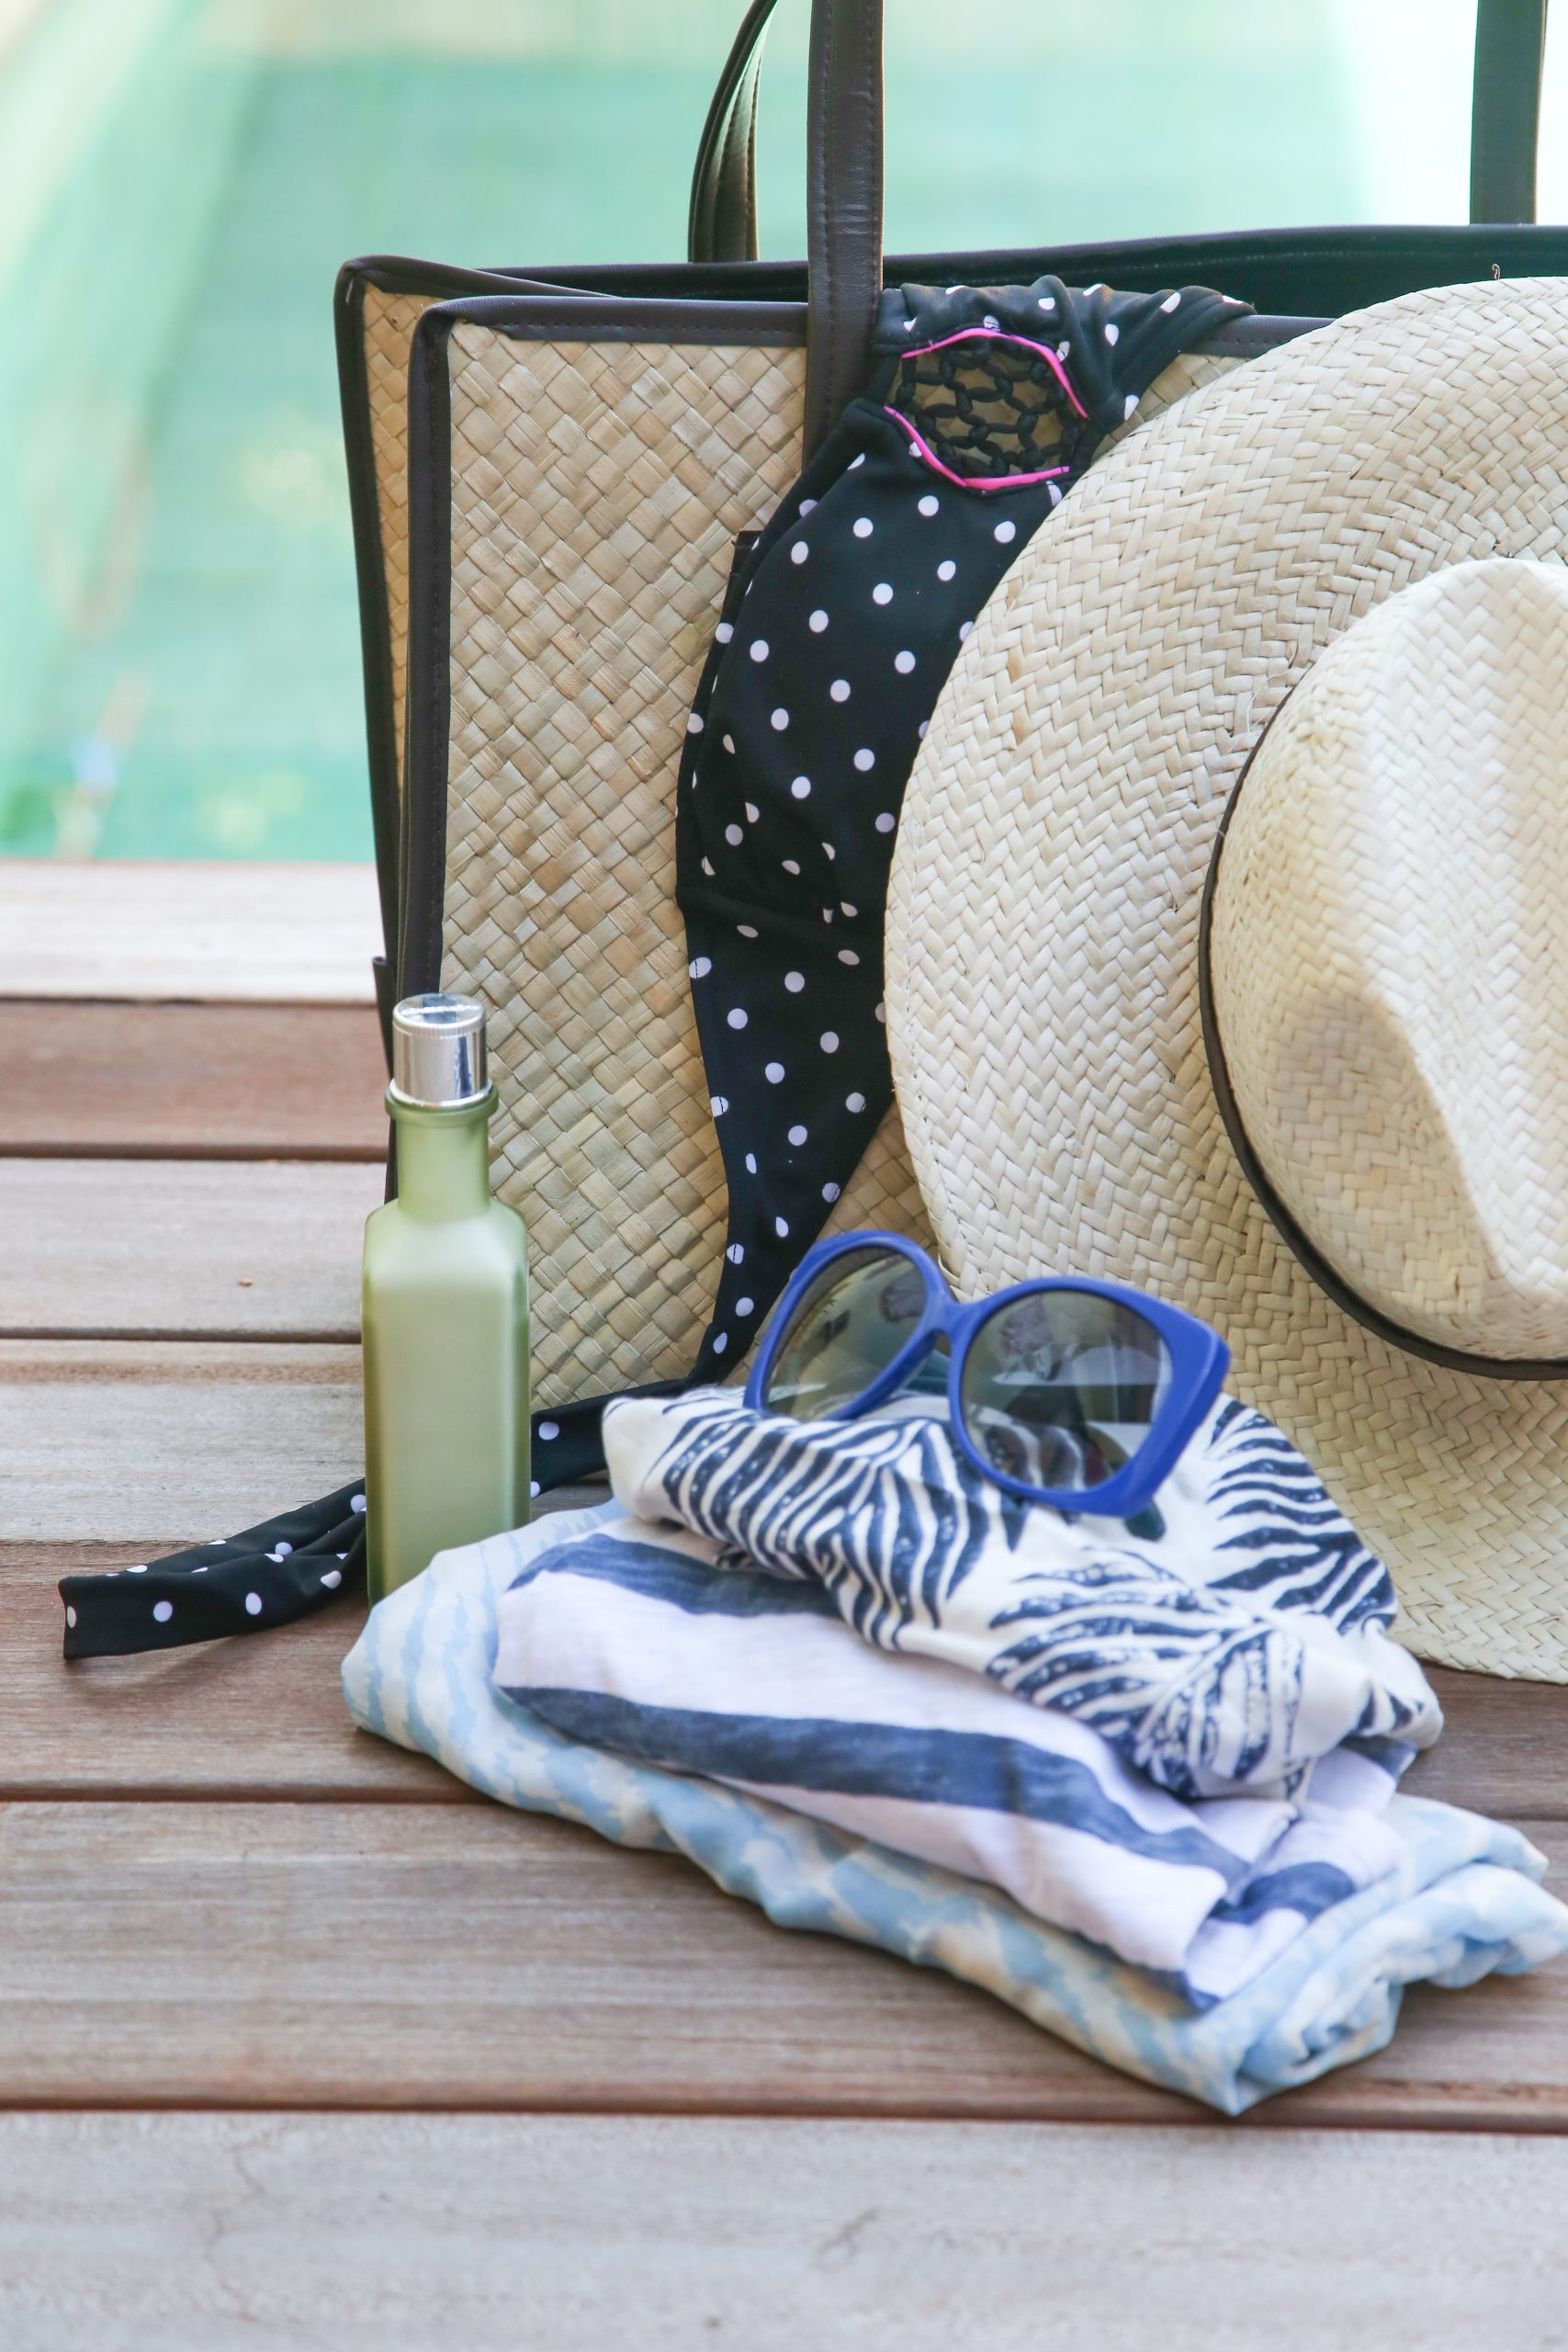 pool bag with sunglasses and hat next to swimming pool